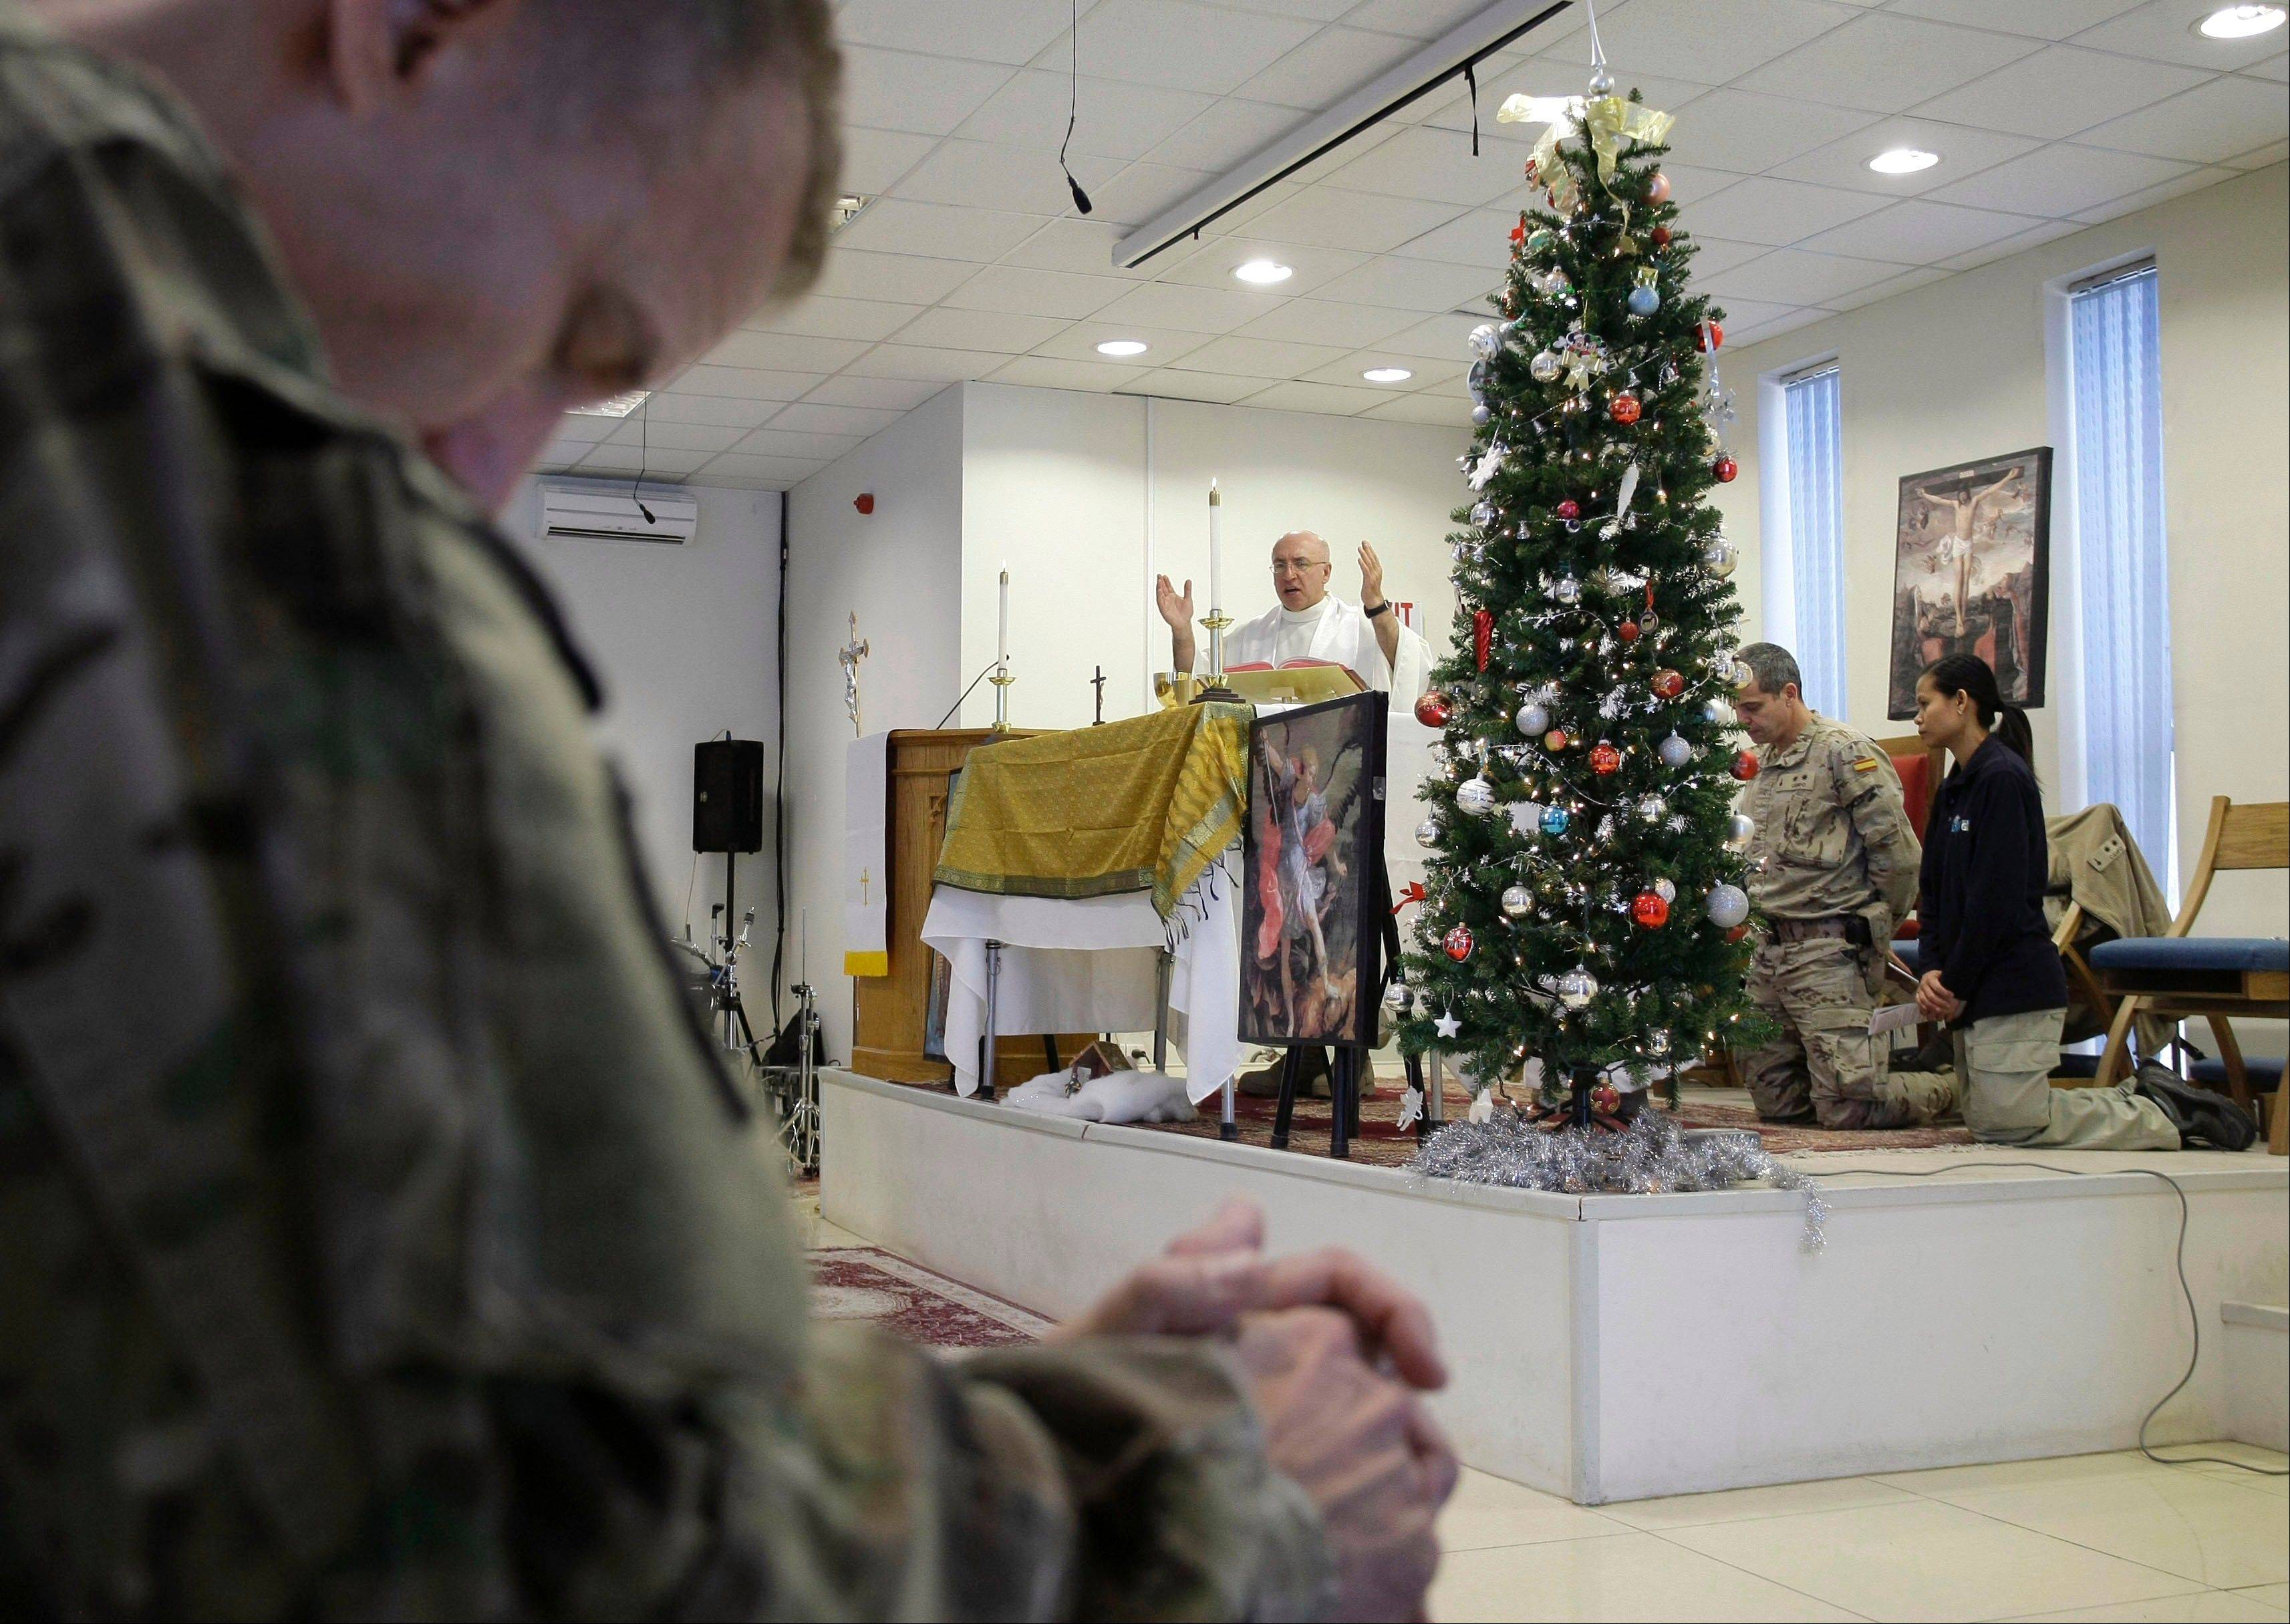 U.S. Army Chaplain Lt. Col. George Rzasowsk, center, leads a Christmas service for soldiers and service members with the NATO- led International Security Assistance Force (ISAF) at the U.S.-led coalition base in Kabul, Afghanistan, Tuesday, Dec. 25, 2012.